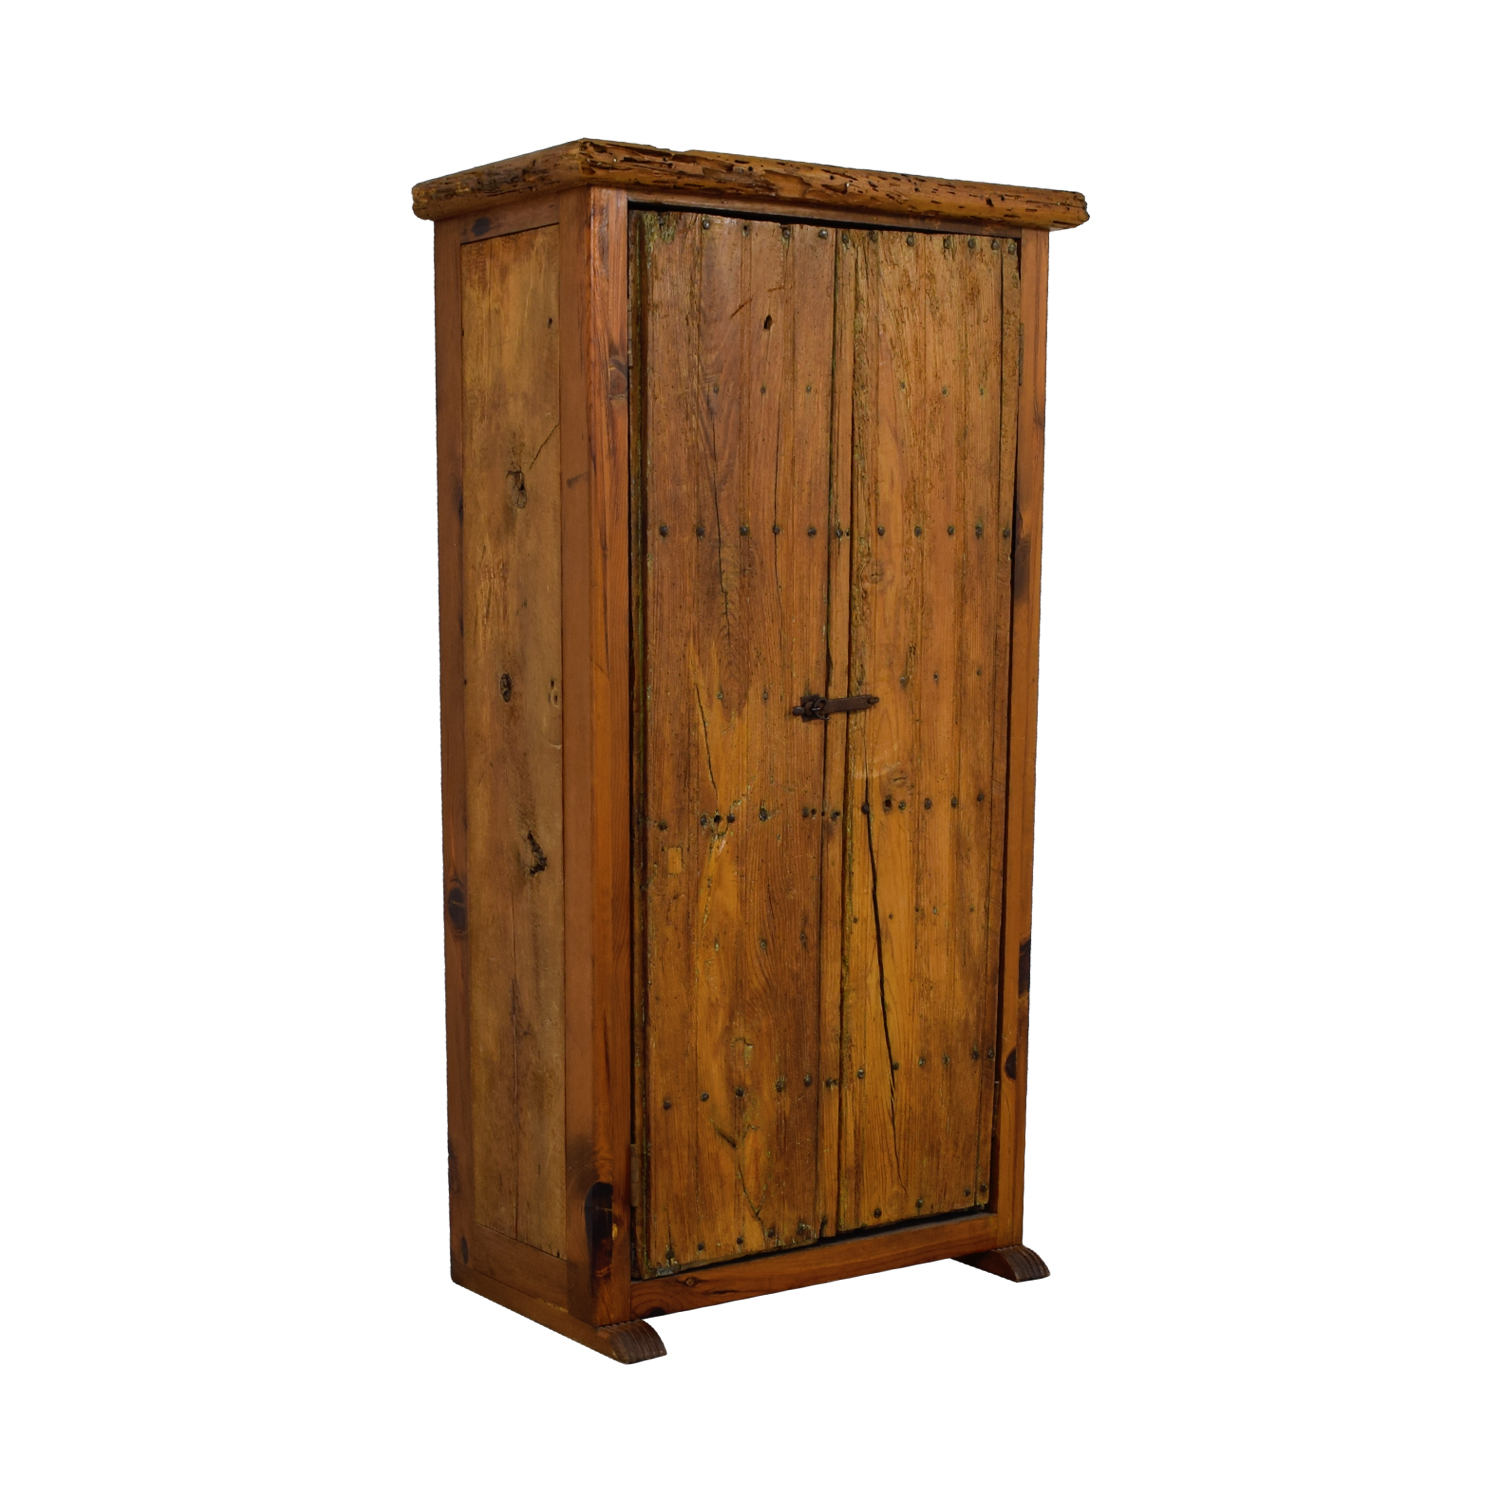 ABC Home & Carpet ABC Home & Carpet Authentic Mexican Rustic Barn Wood Armoire price